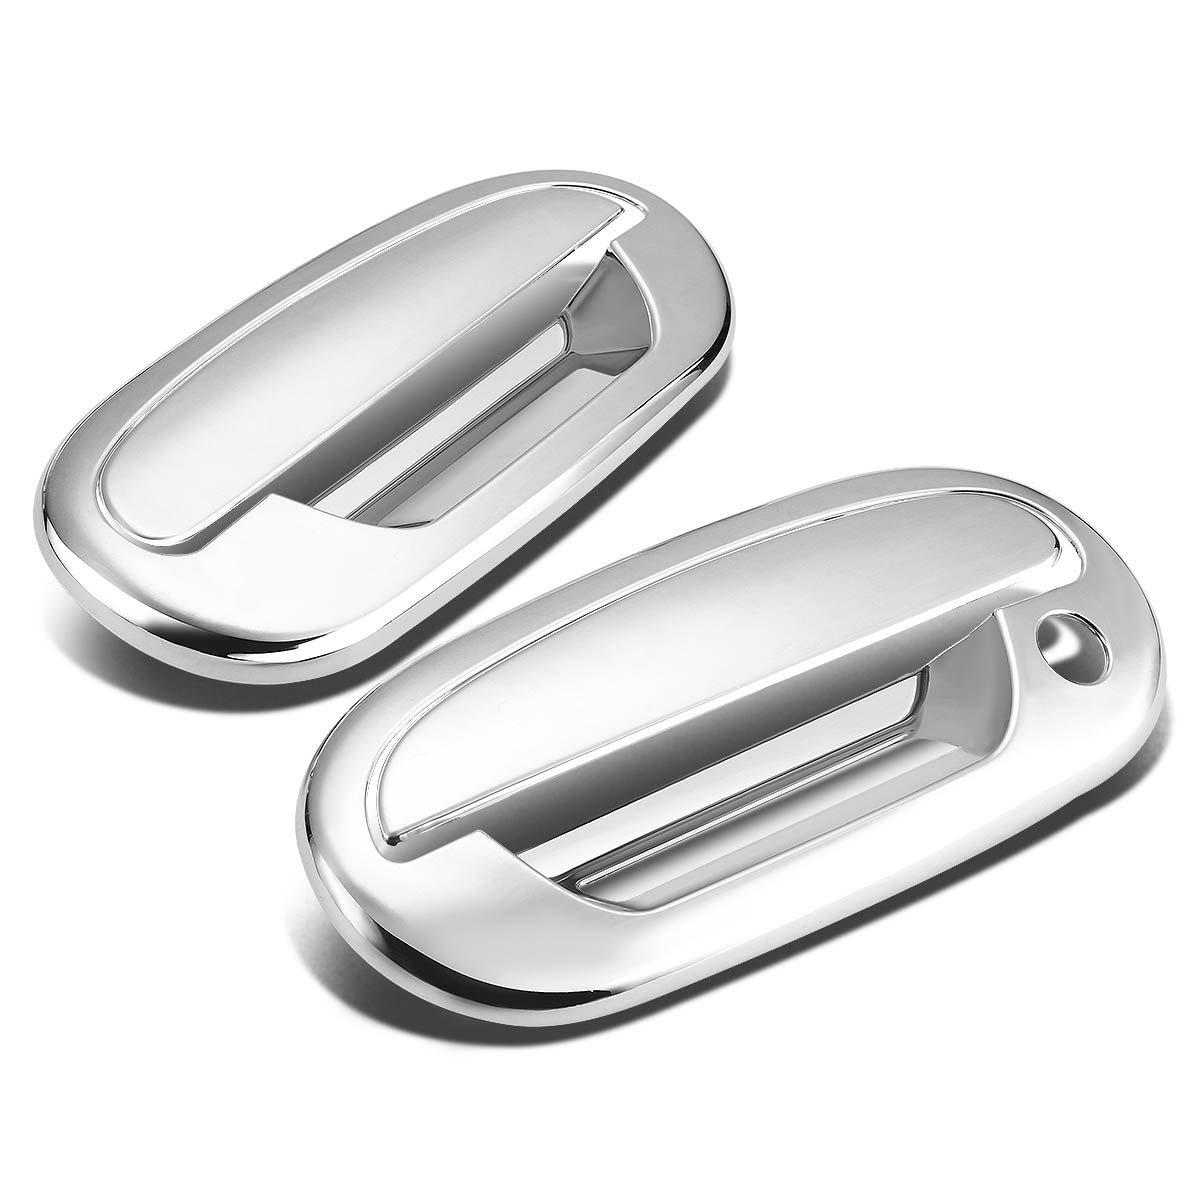 97 03 Ford F150 04 Heritage 2pcs Exterior Door Handle Cover